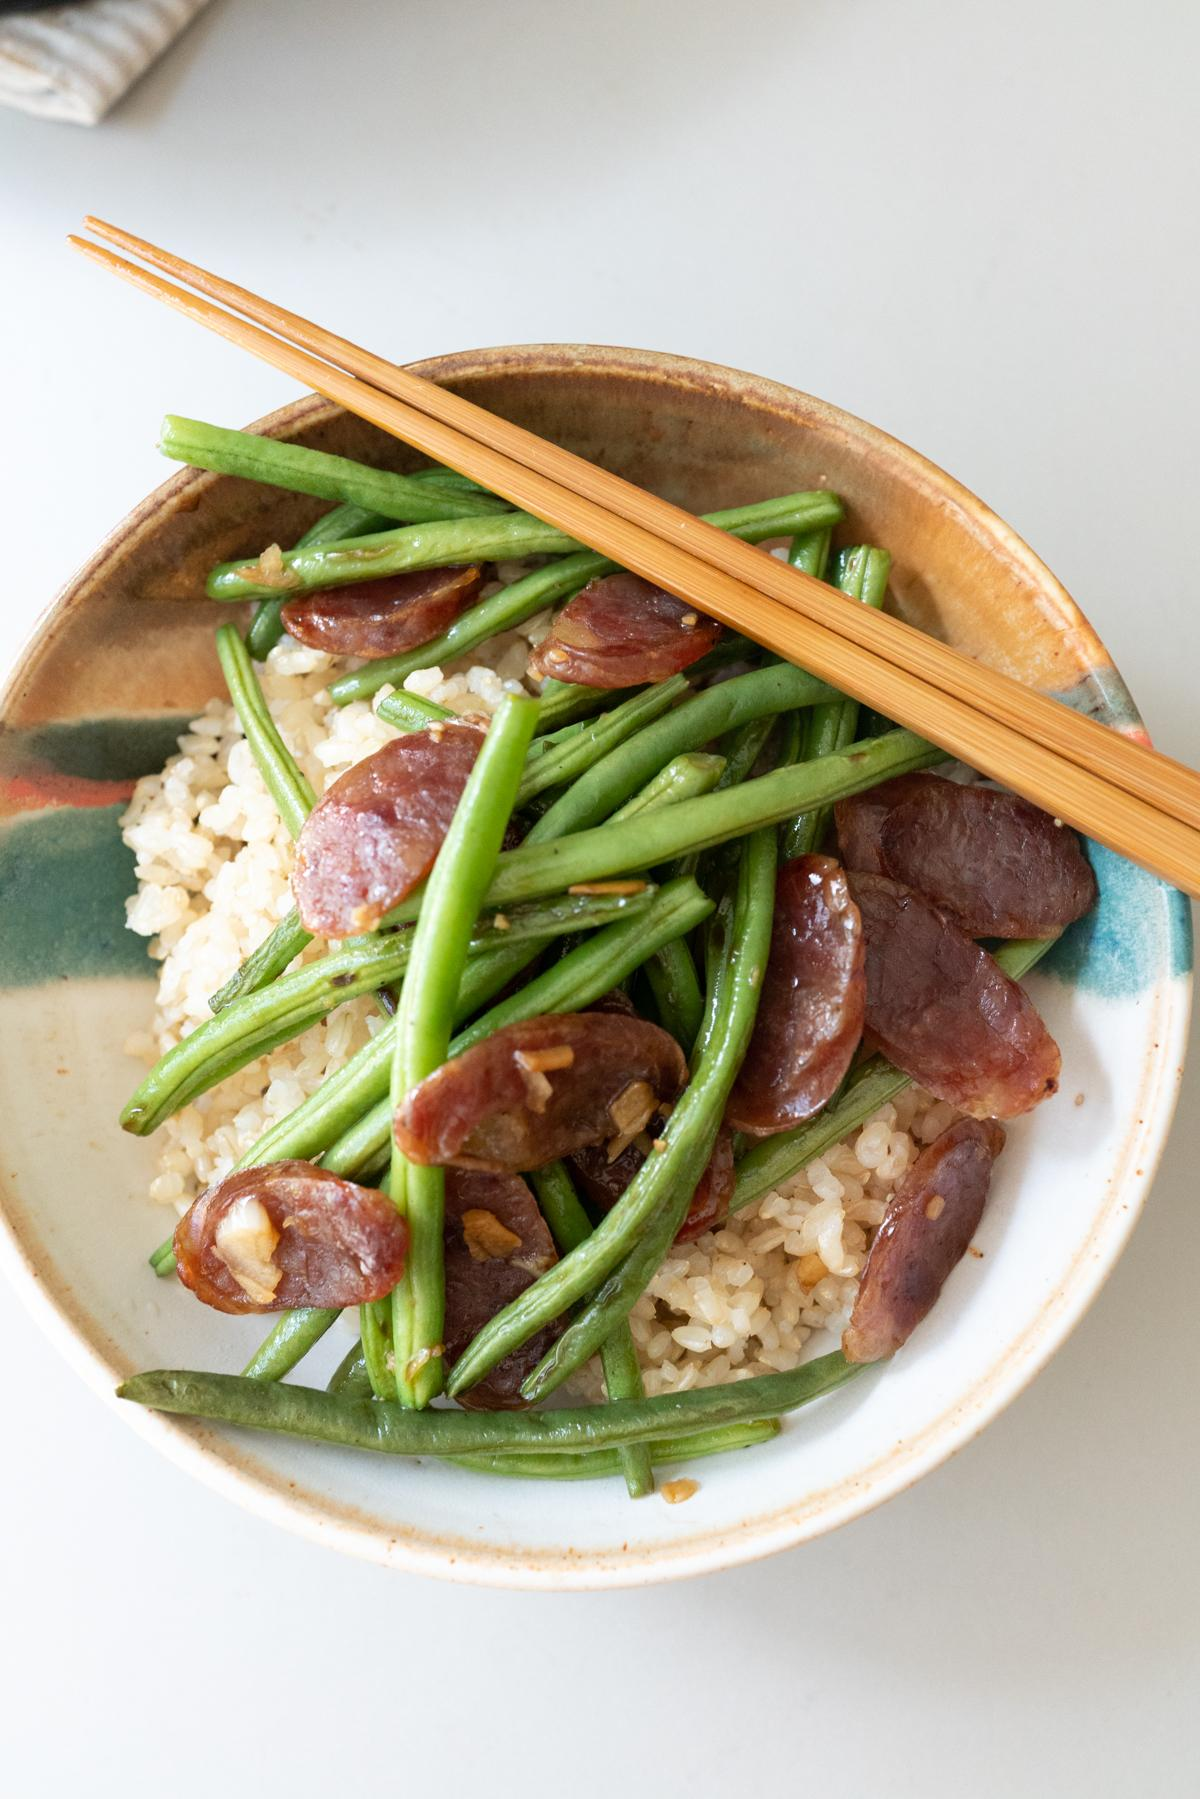 Chinese sausage and green beans served over rice in a bowl